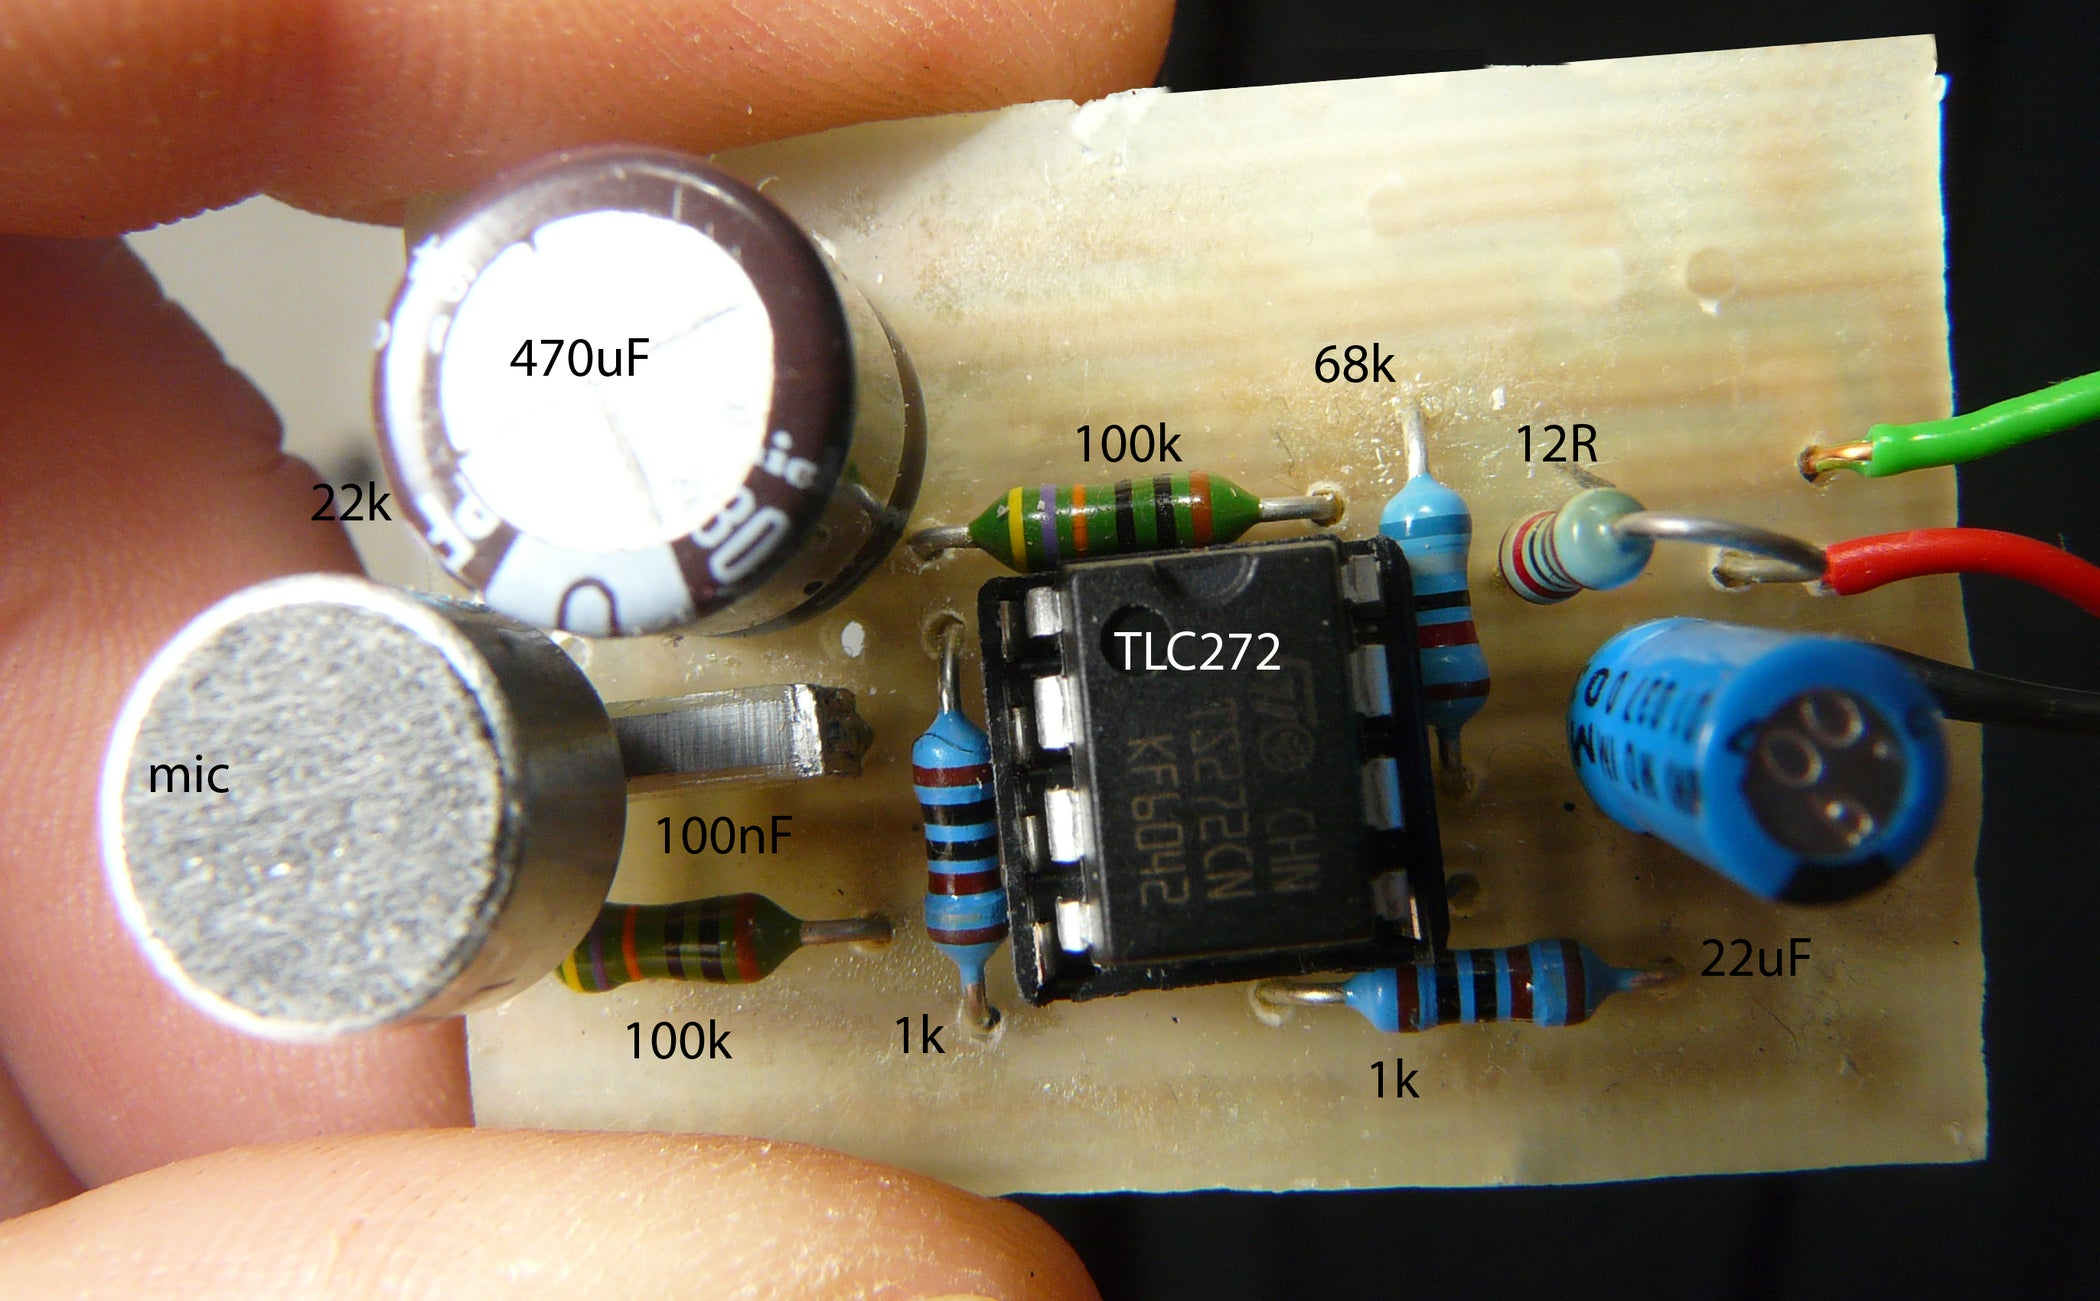 Sound Pressure Sensor For Arduino Based On Zx Board Level Meter Electronics Circuits You